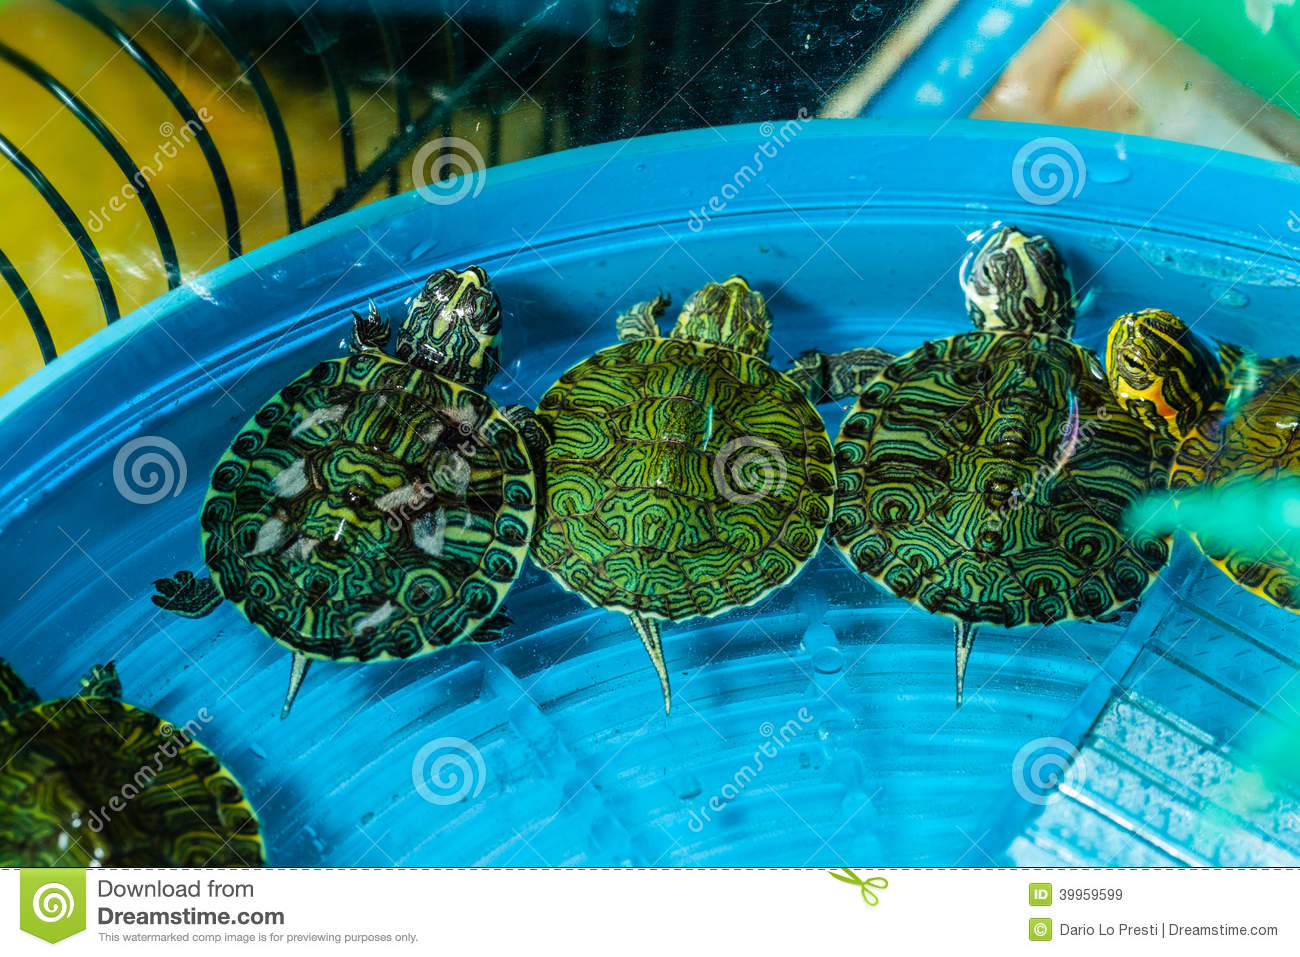 Three small pet turtles in a bowl full of water triyng to escape.